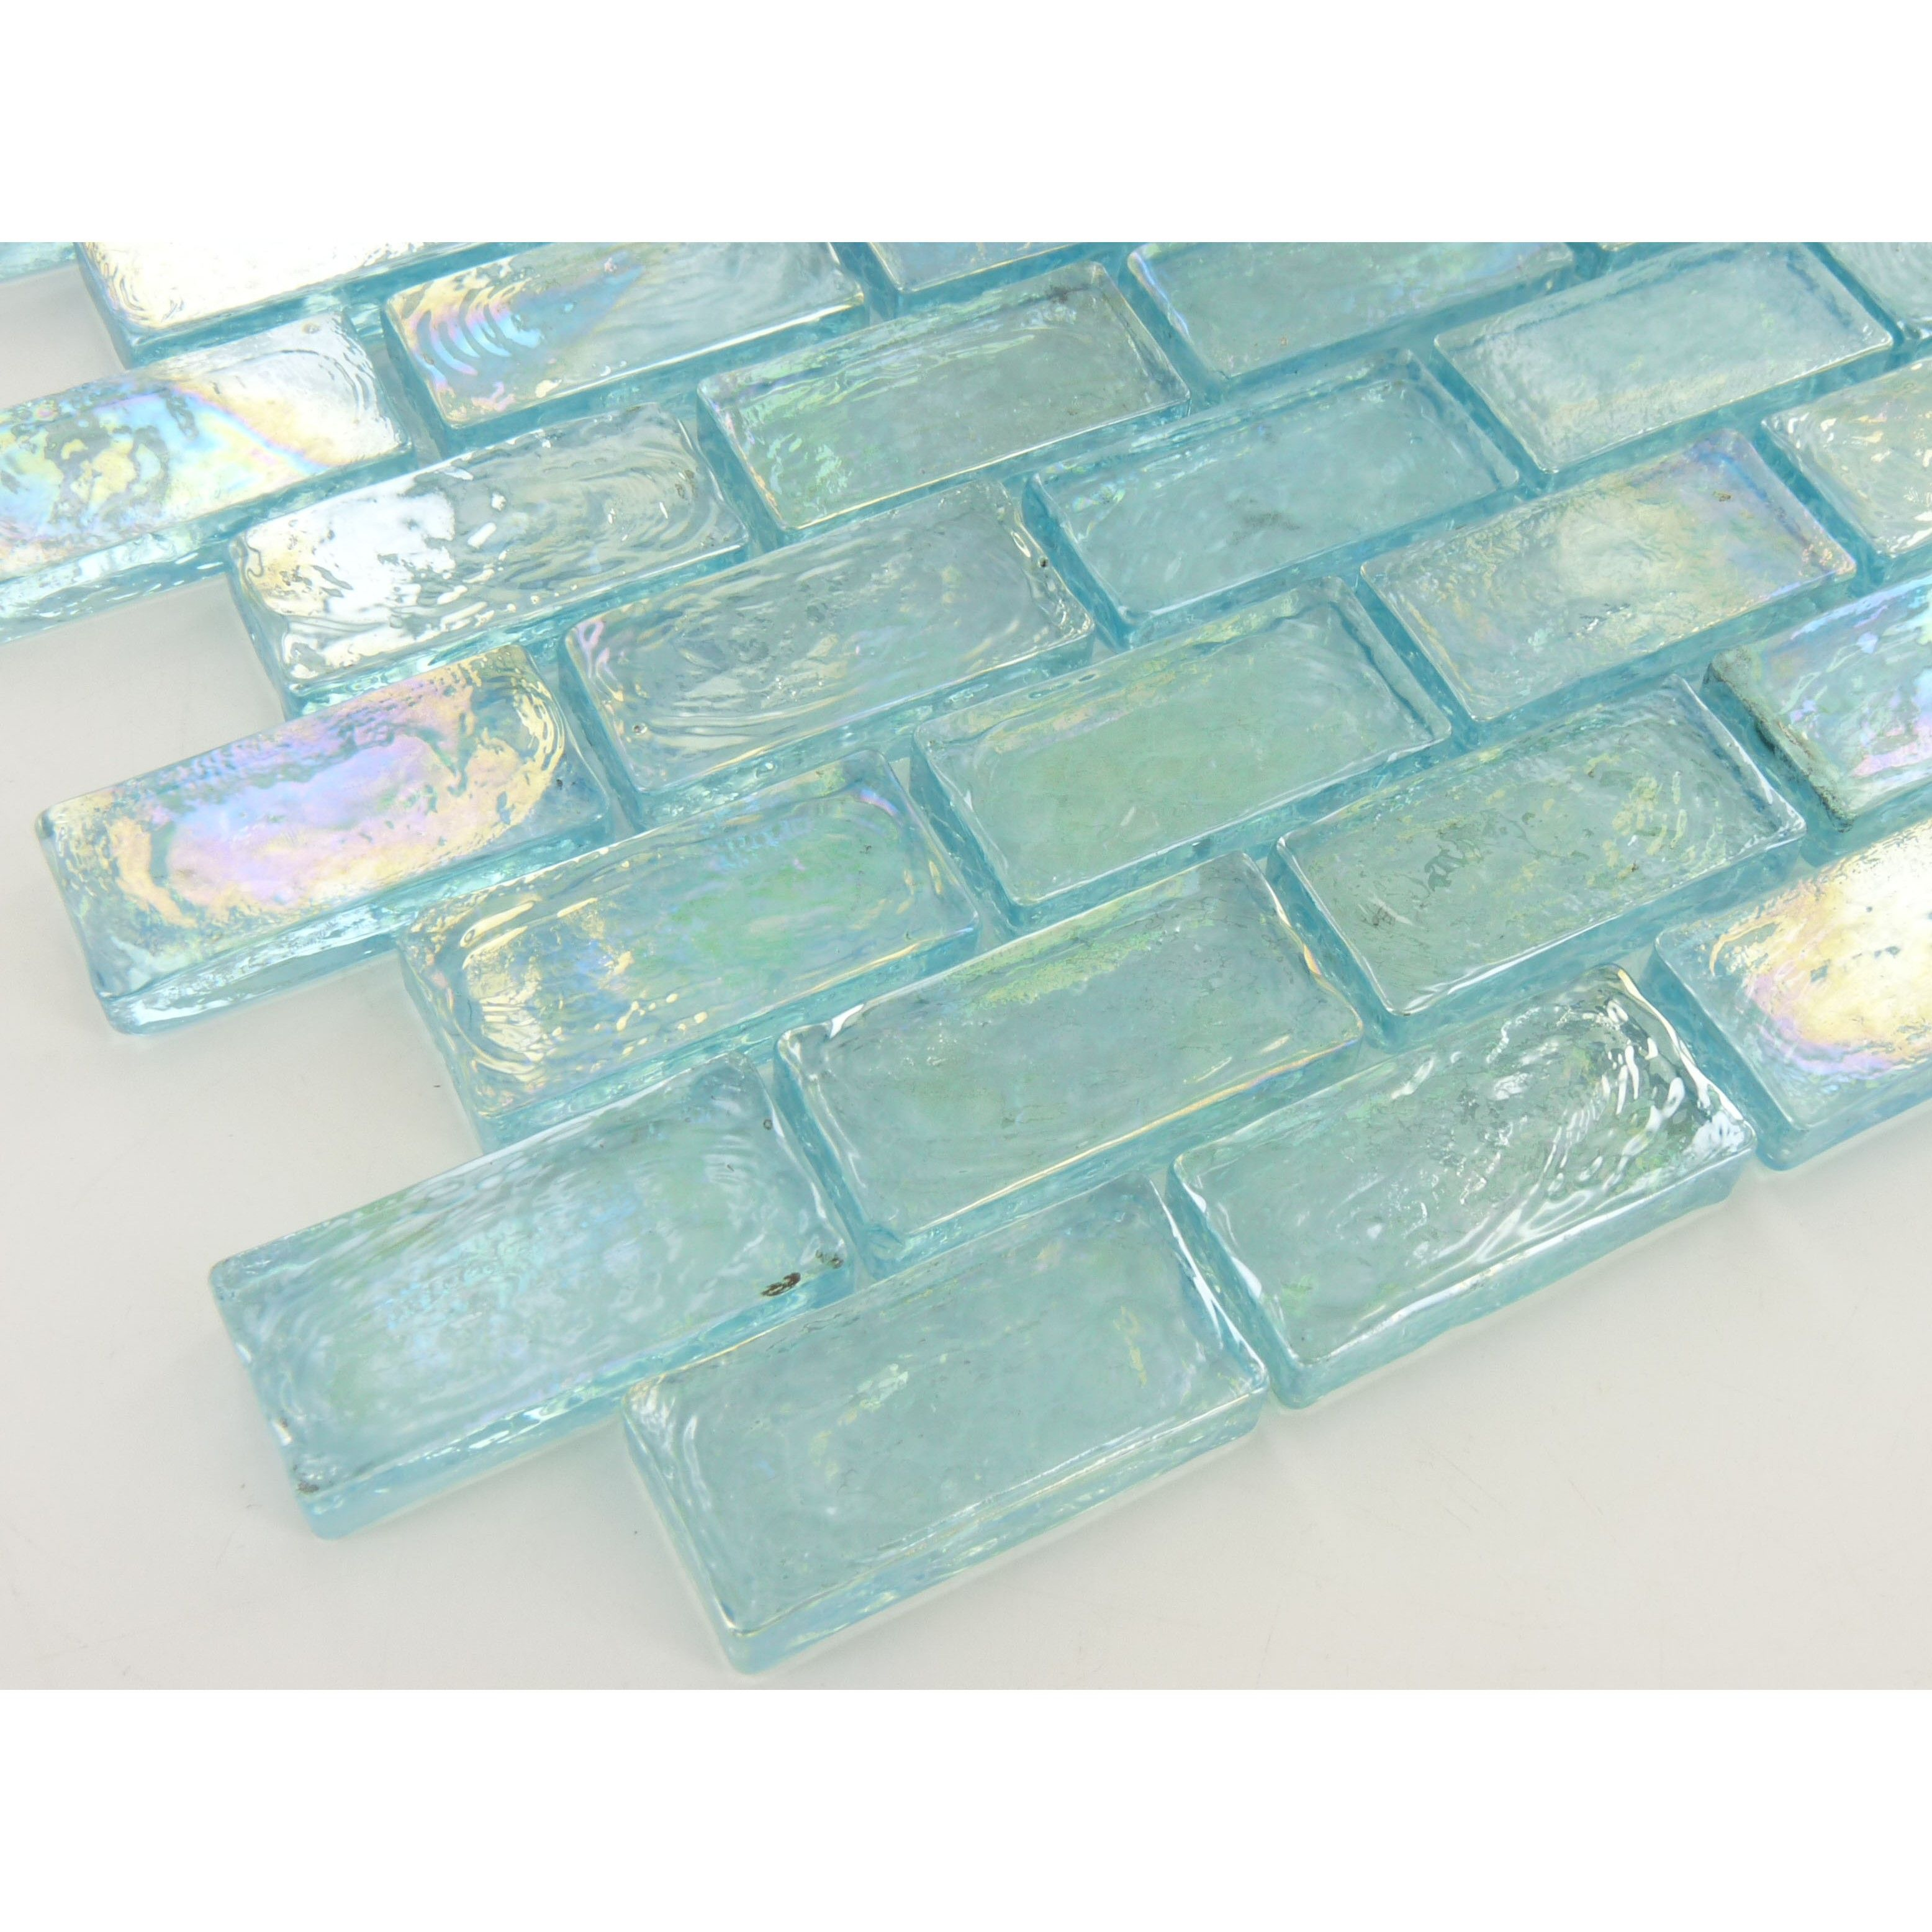 Ibr21 Aqua Illusion Bricks 1 1 2 X 3 4 Glass Tile Oasis Outlet Center Iridescent Tile Glass Brick Glass Tile